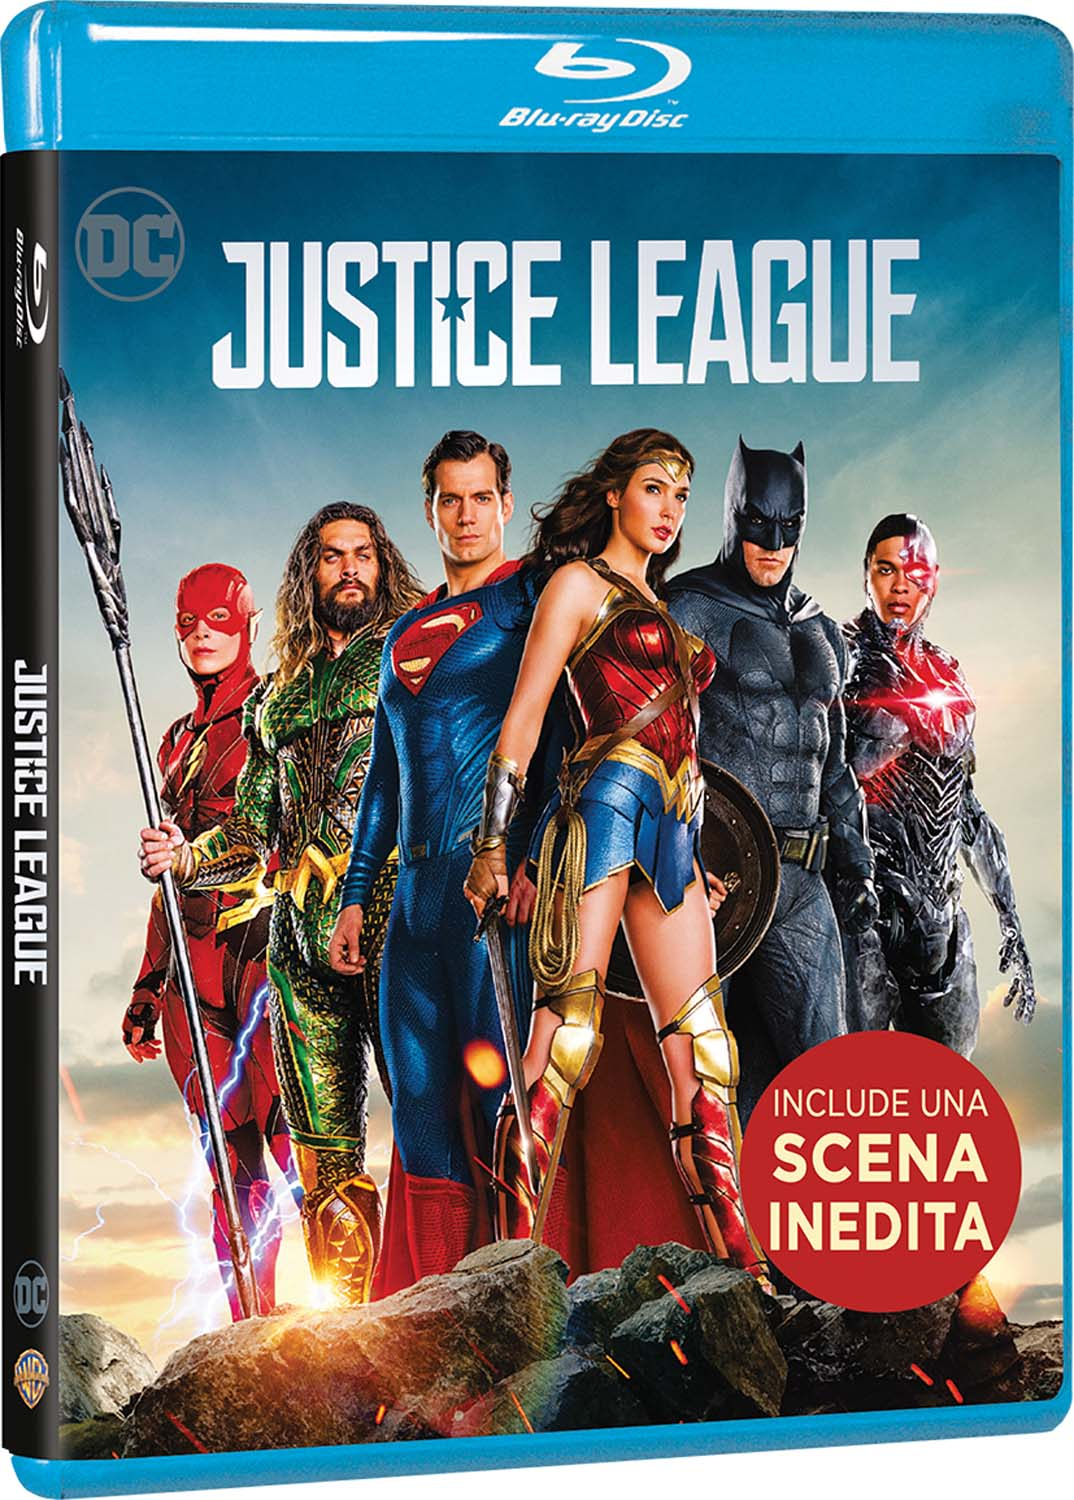 JUSTICE LEAGUE - BLU RAY